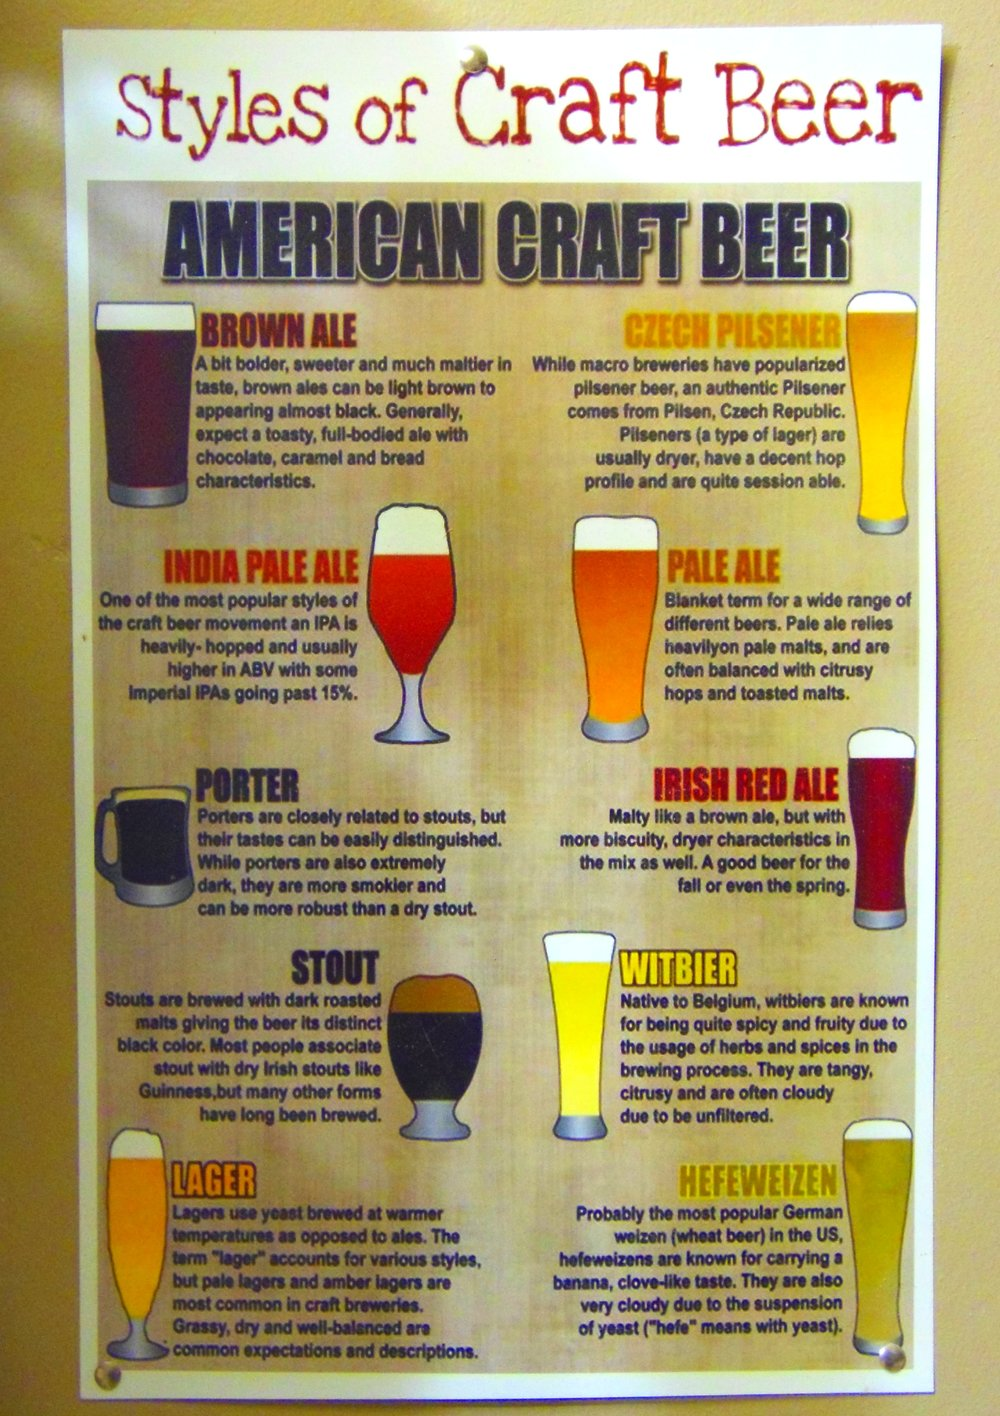 Look at all the styles of beers you can brew!